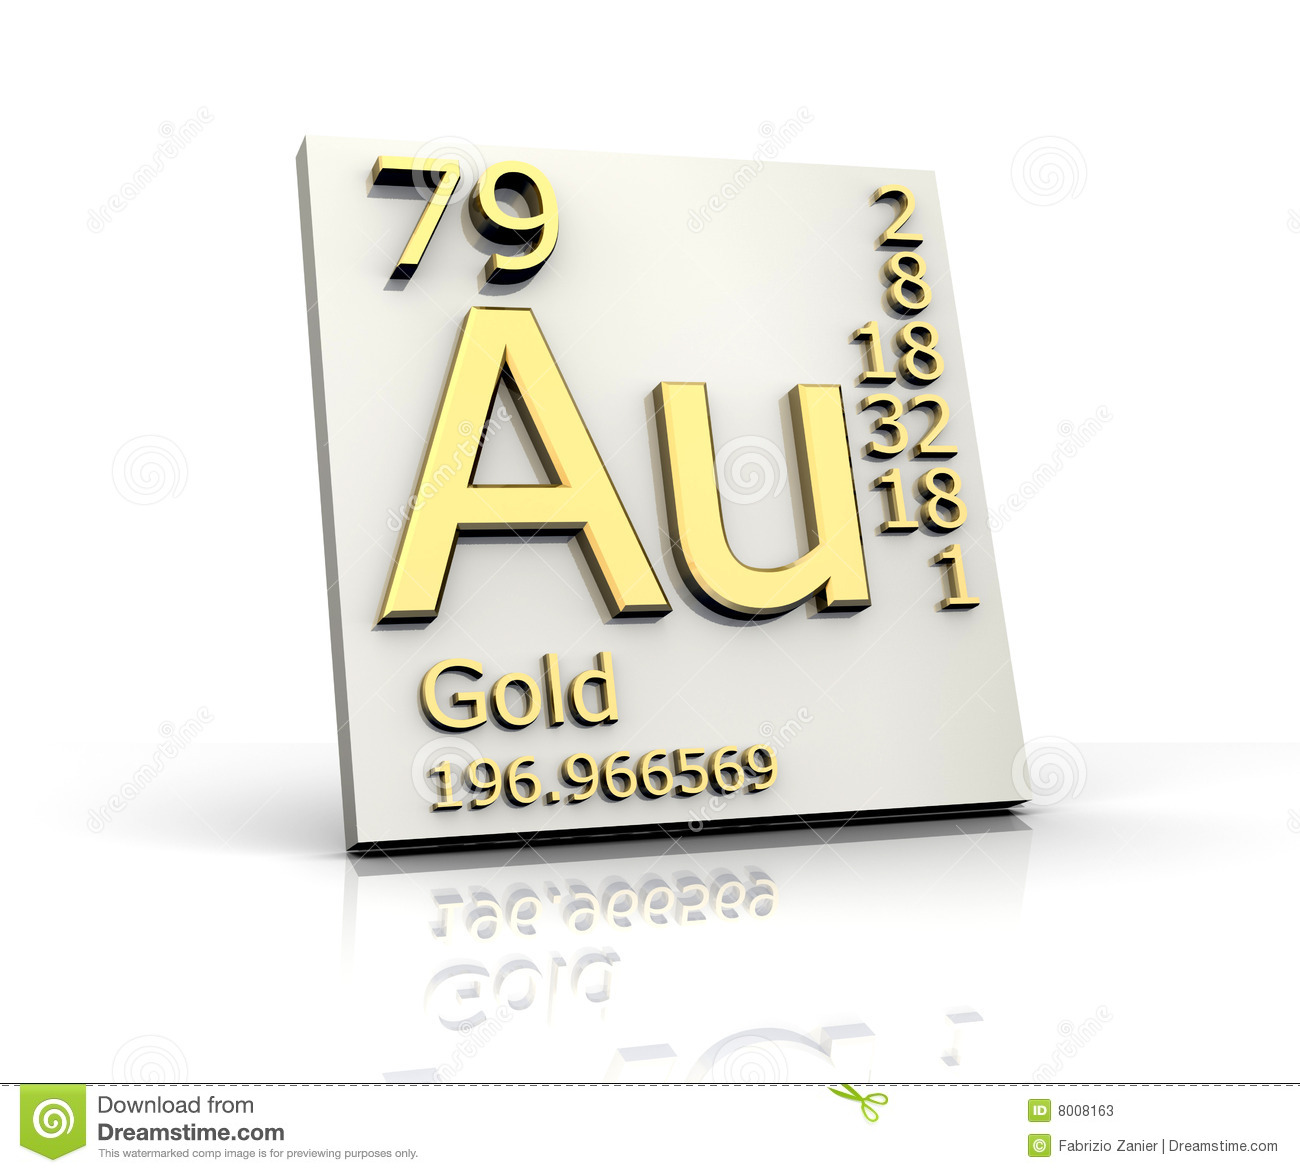 Gold form periodic table of elements stock illustration download gold form periodic table of elements stock illustration illustration of scientific laboratory urtaz